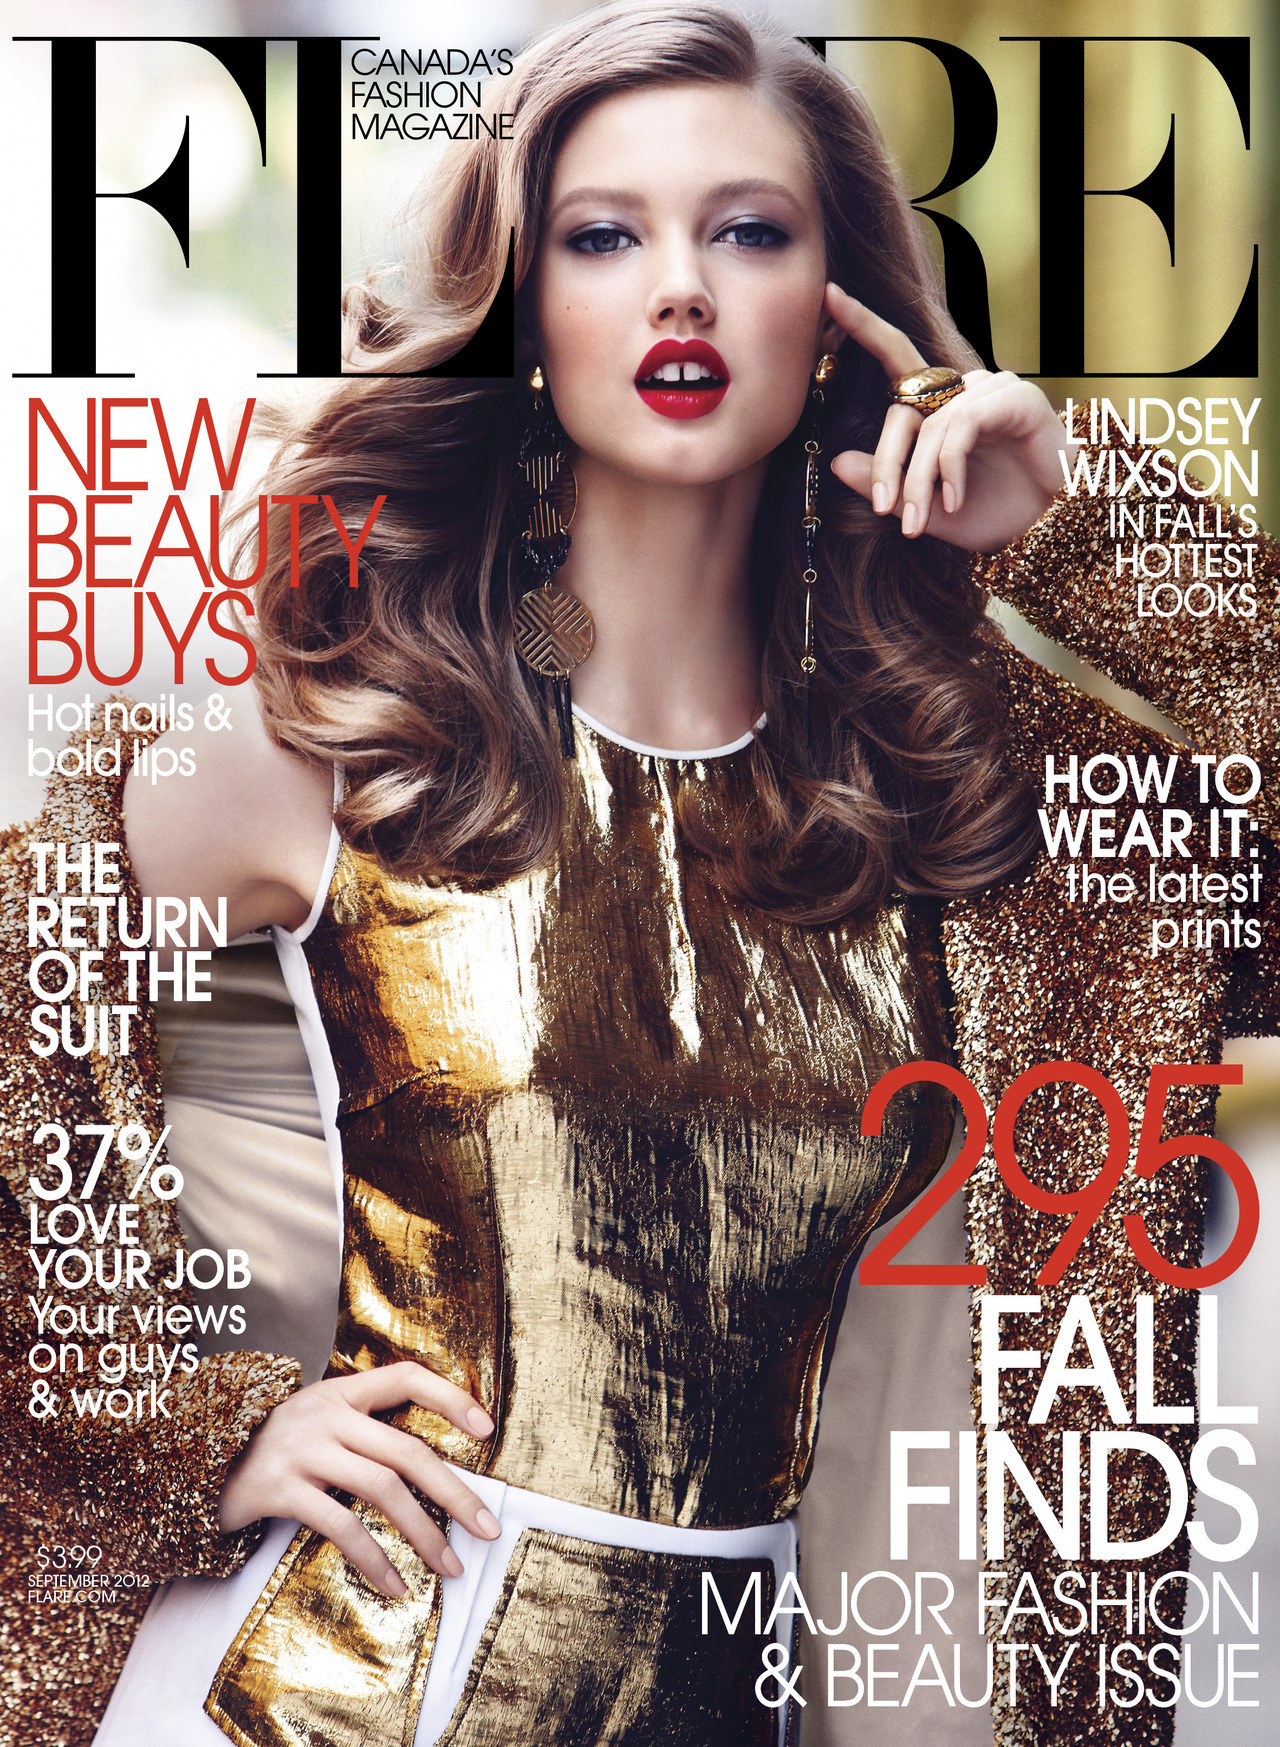 Lindsey Wixson - September 2012 / Fashion Director: Elizabeth Cabral / Acting Art Director: Benjamin MacDonald / Photographer: Max Abadian See behind-the-scenes footage from our September cover shoot in New York.